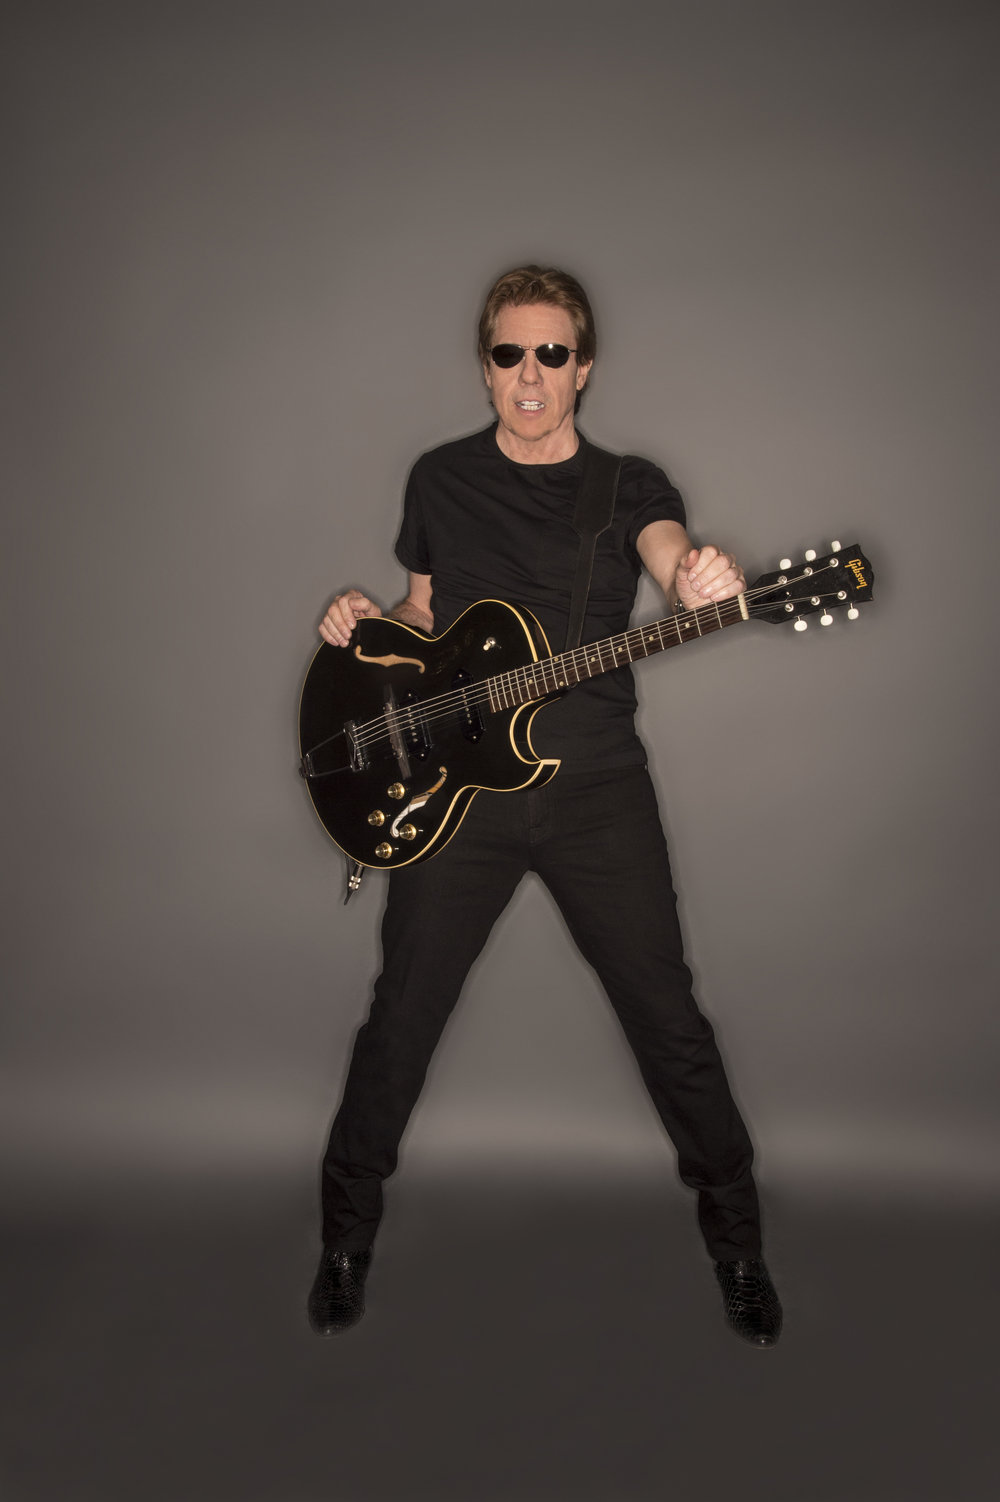 George Thorogood and The Destroyers Rock Party Tour | Tarrytown Music Hall | 06.07